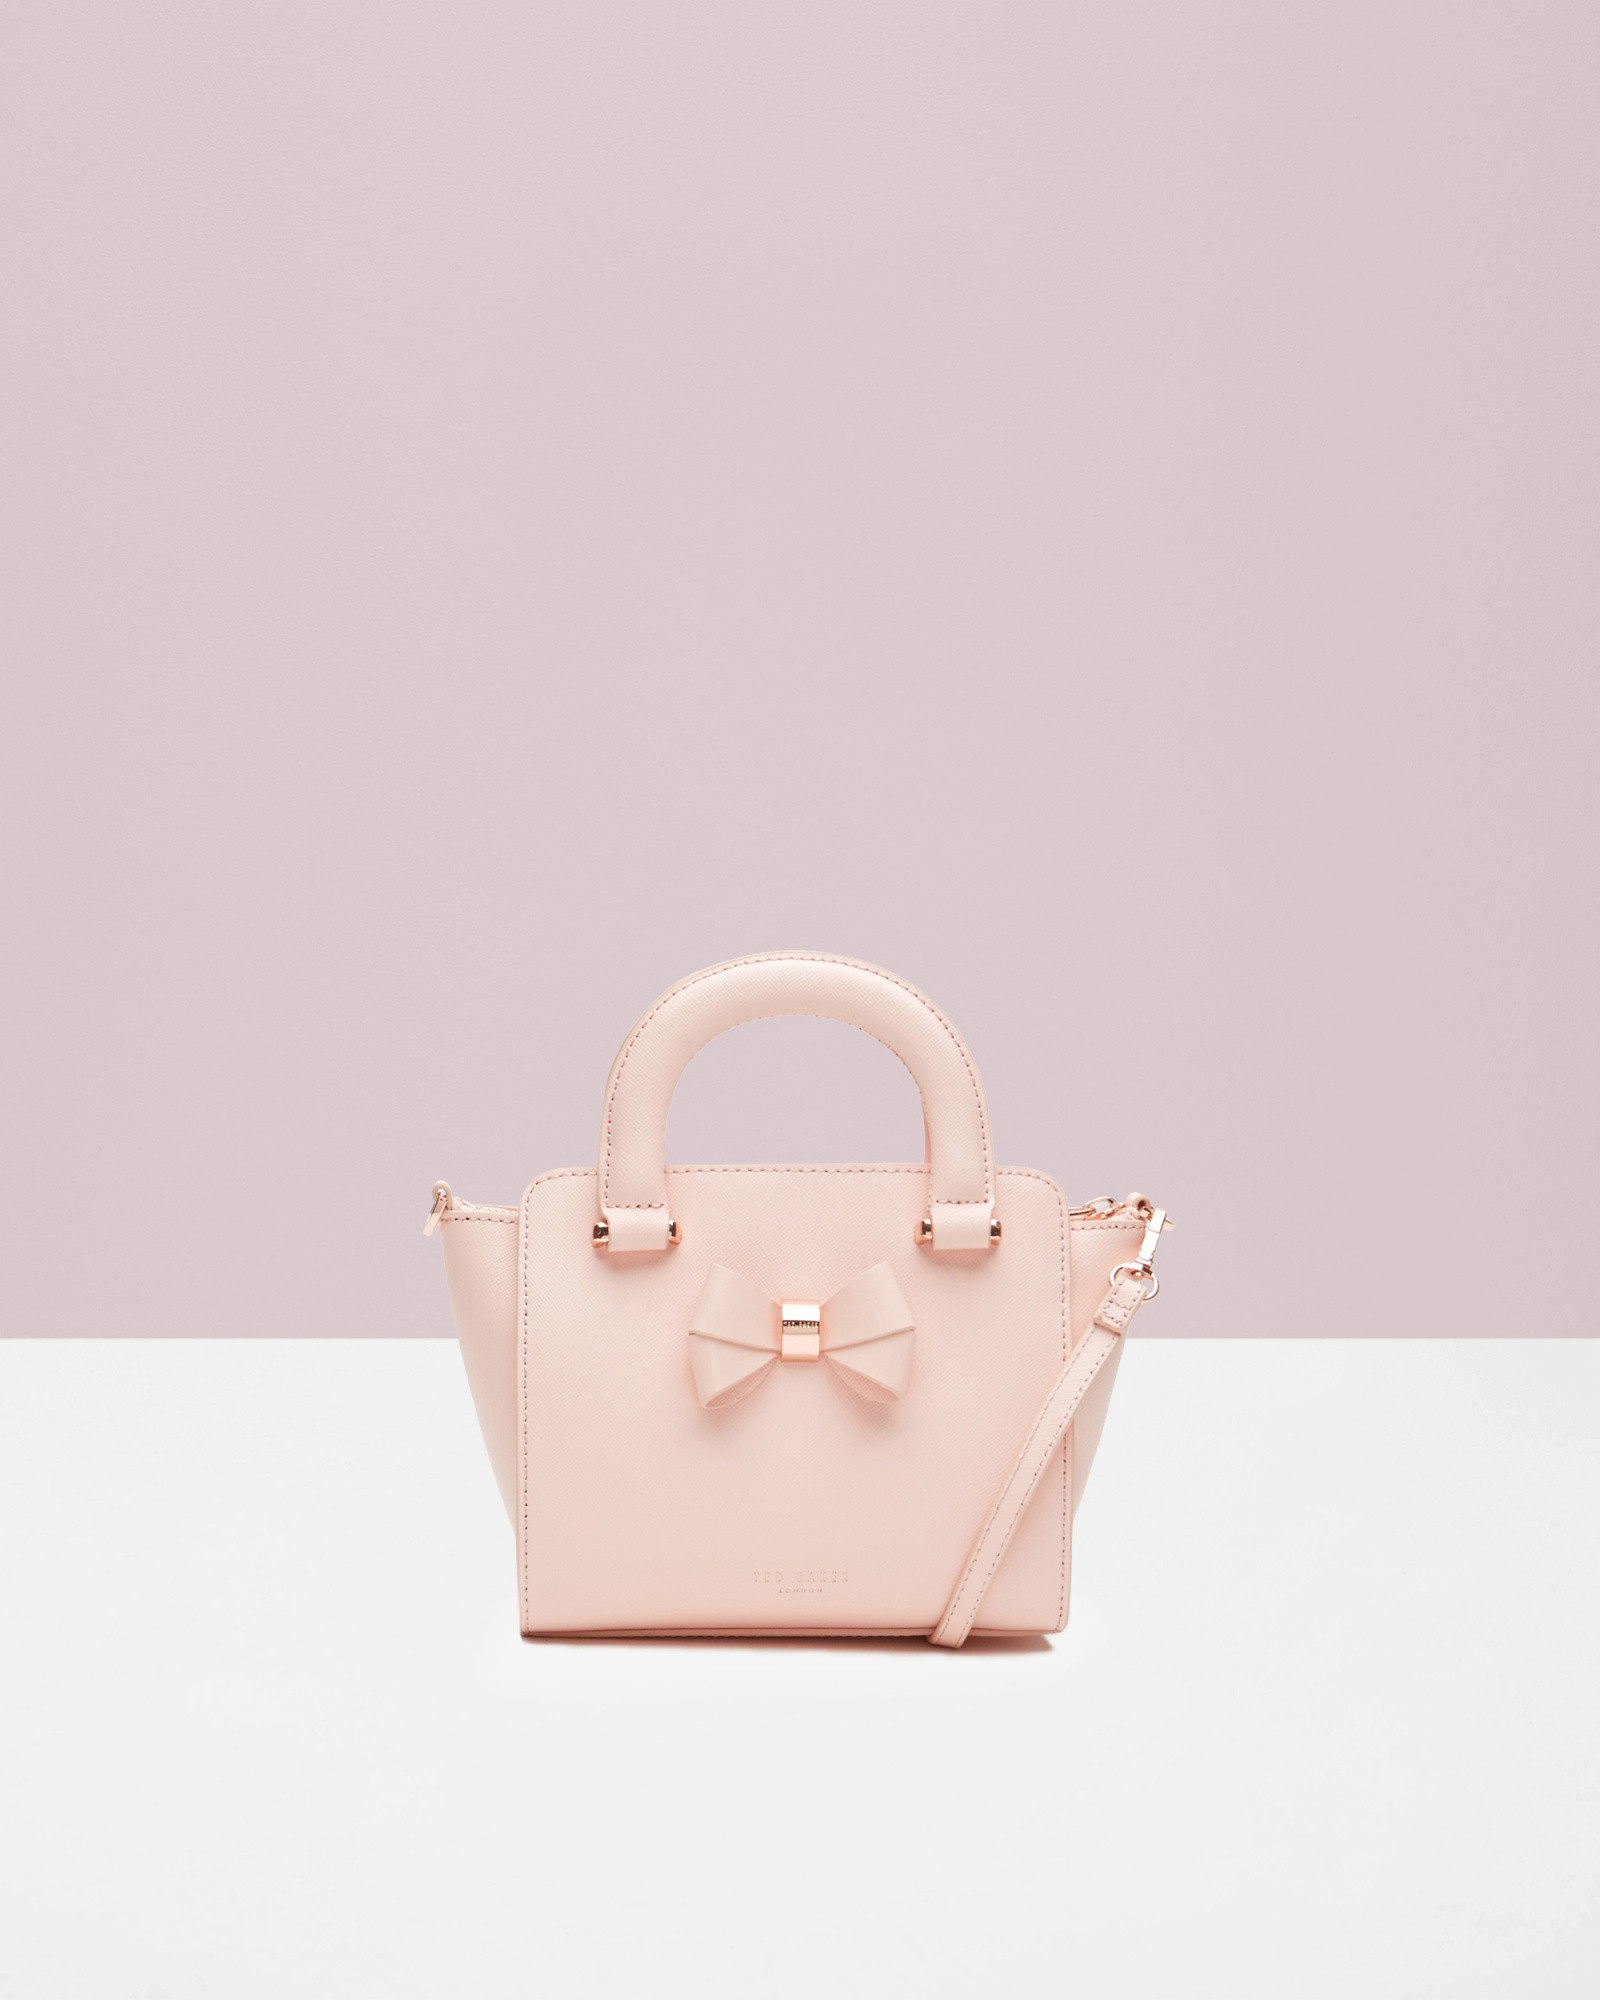 c504e874d5a391 Lyst - Ted Baker Mini Bow Crosshatch Leather Shopper Bag in Pink